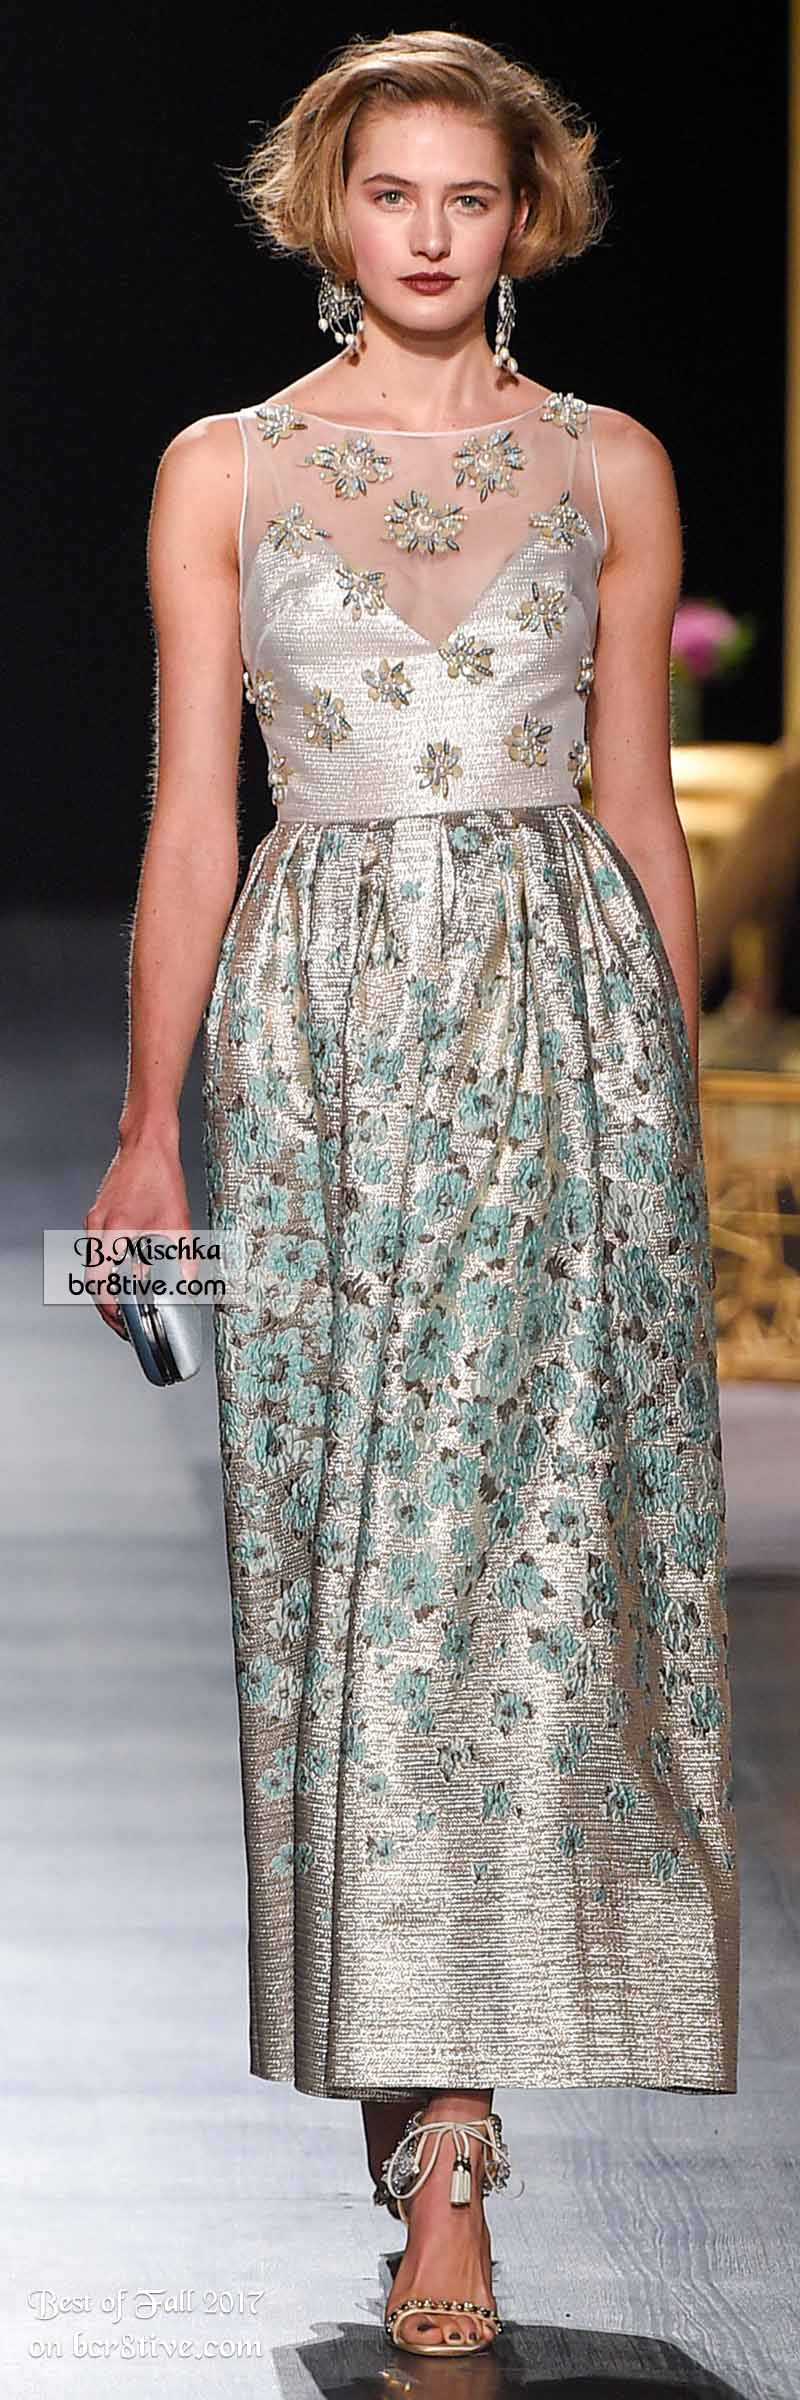 Badgley Mischka Fall 2017